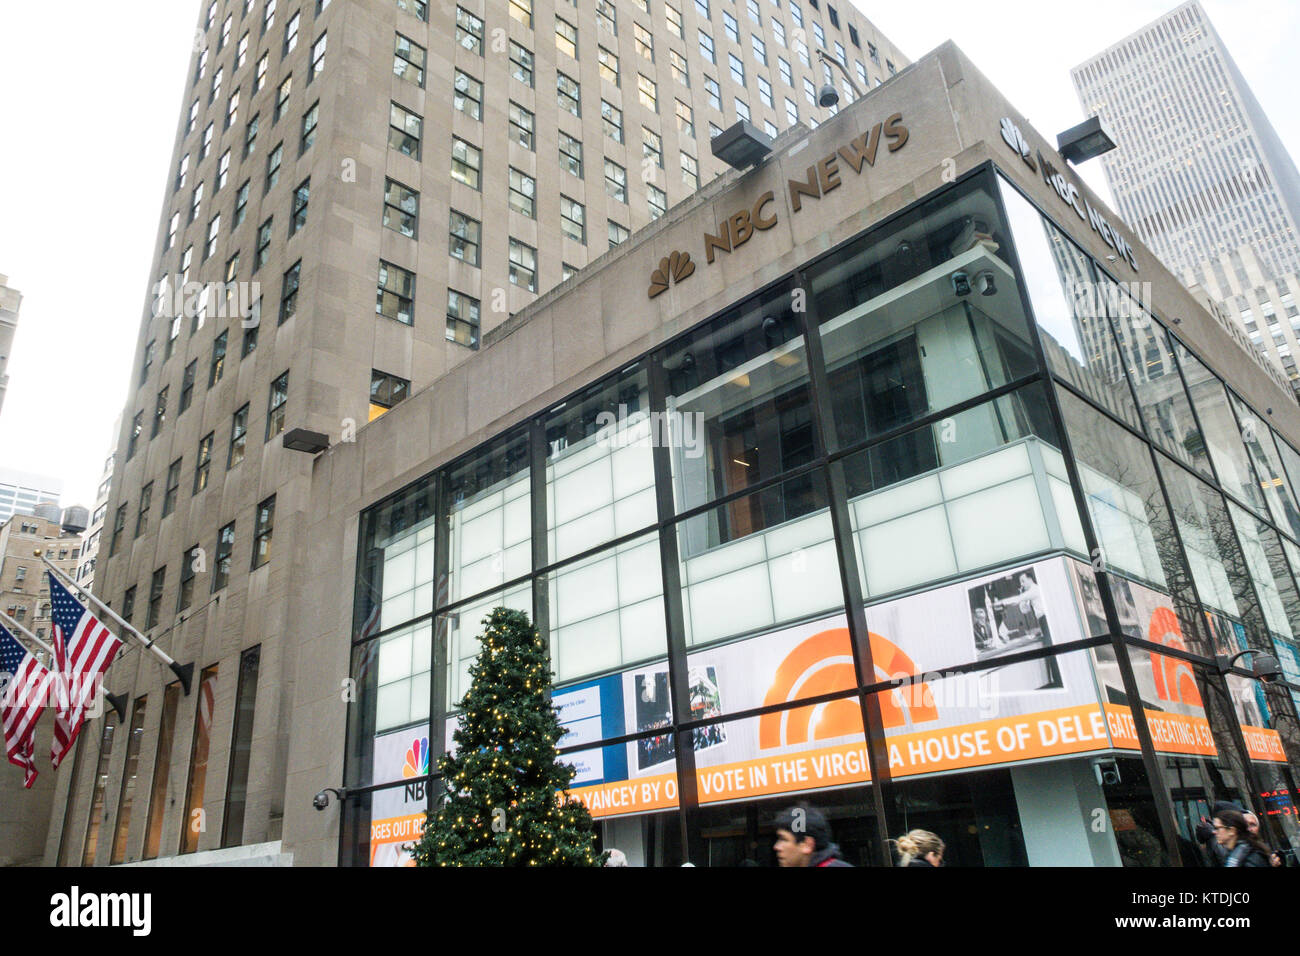 NBC News and Today Show Studio in Rockefeller Center, NYC, USA Stock